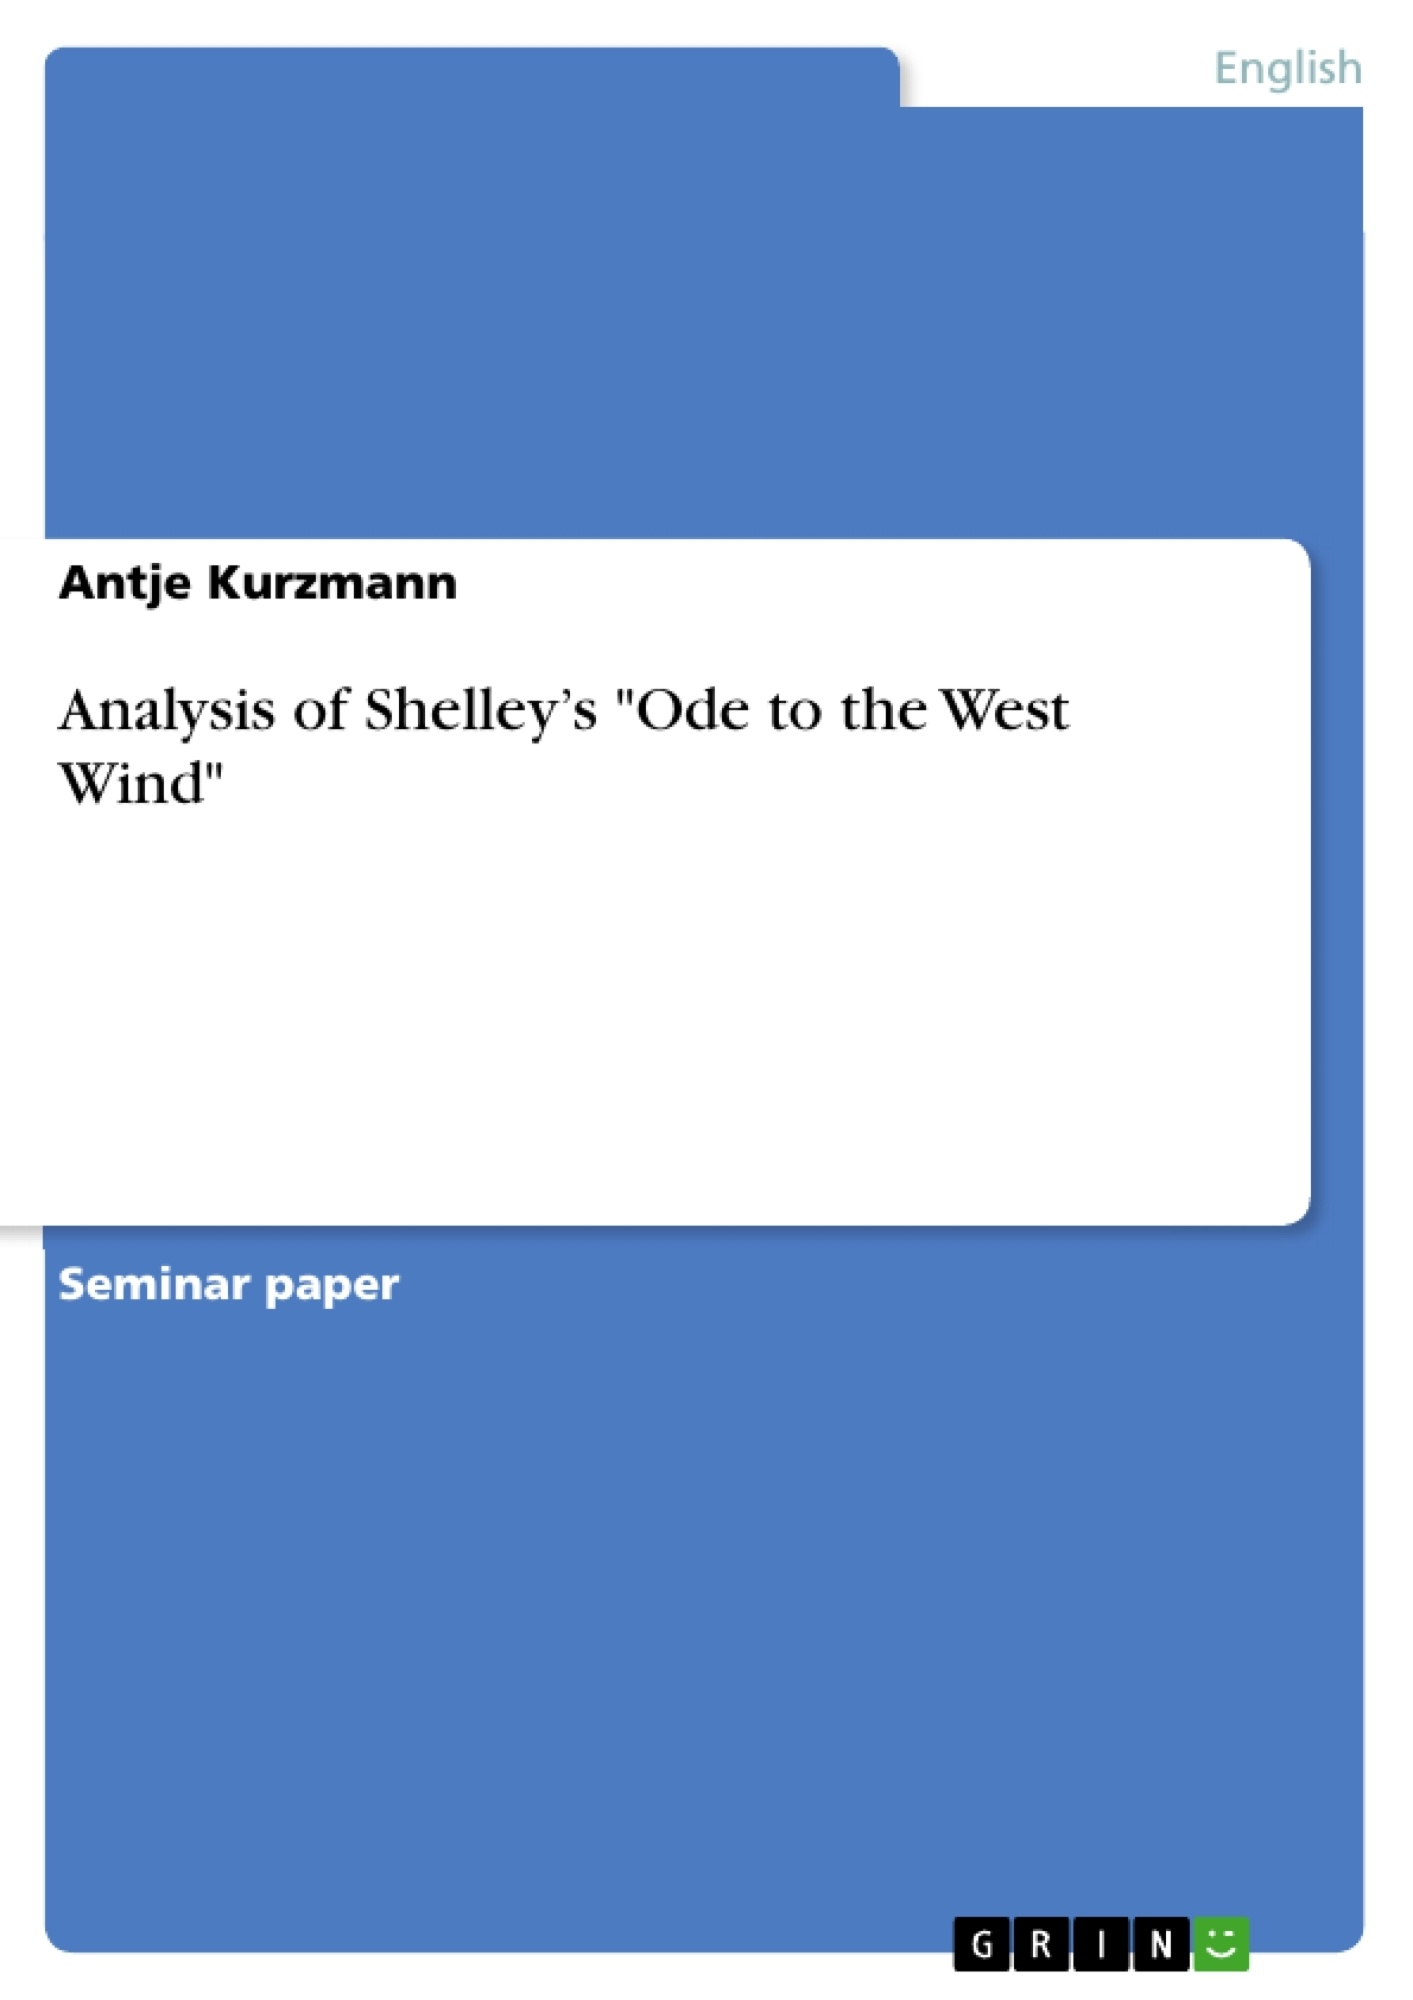 romanticism in ode to the west wind english literature essay Distinct from the other romantics of english literature unlike other  shelley  wrote 'ode to the west wind' at caseine garden, an idyllic place near  in an  essay on shelley published in the cambridge history of english.